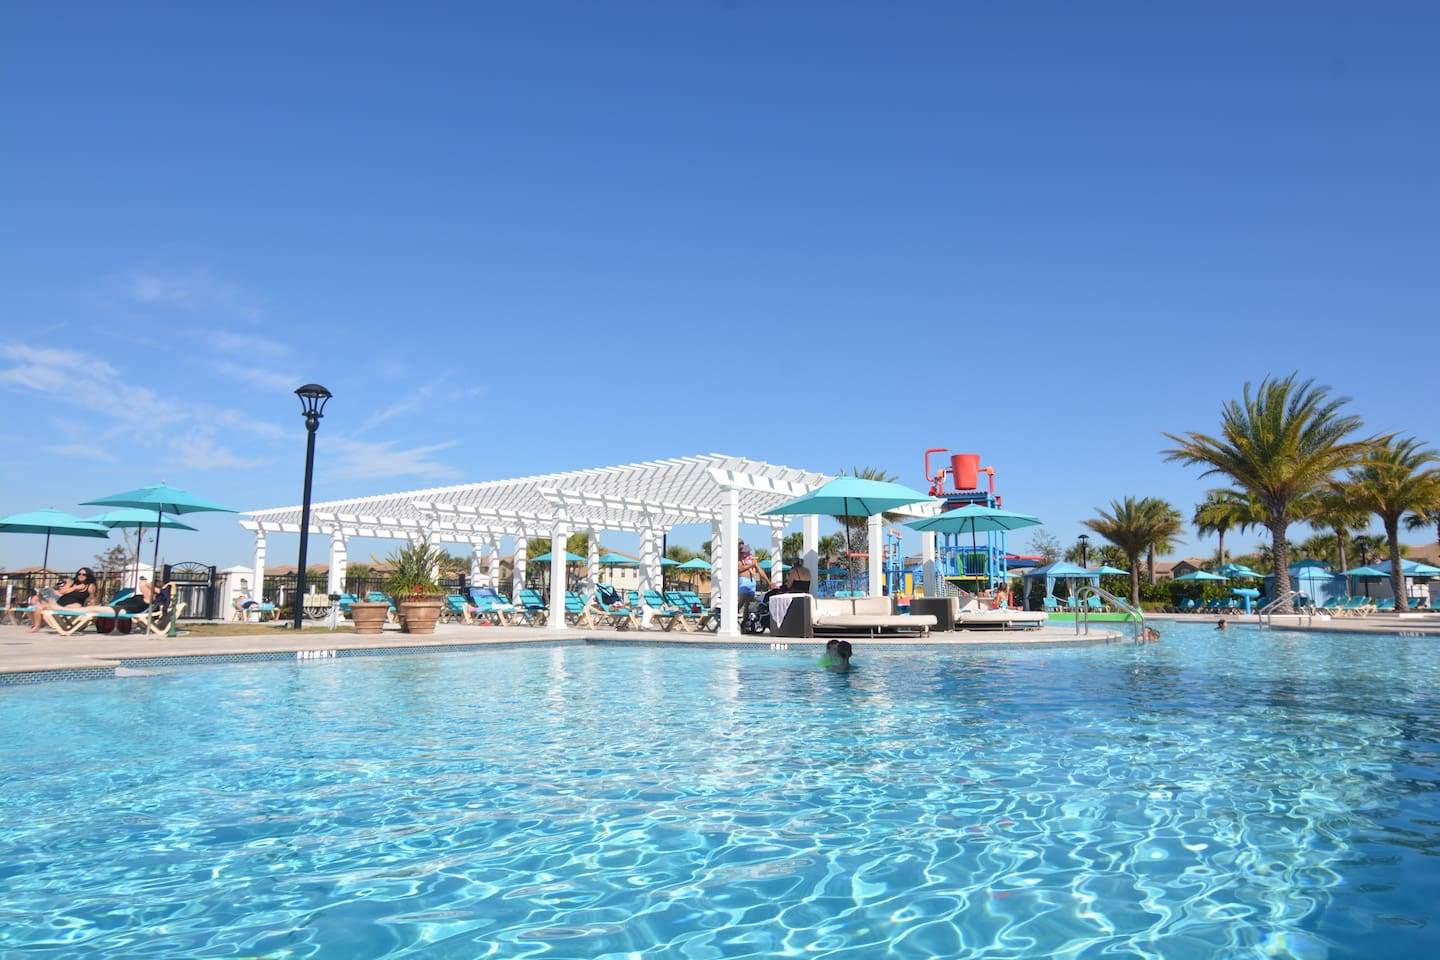 Resort pool and water park